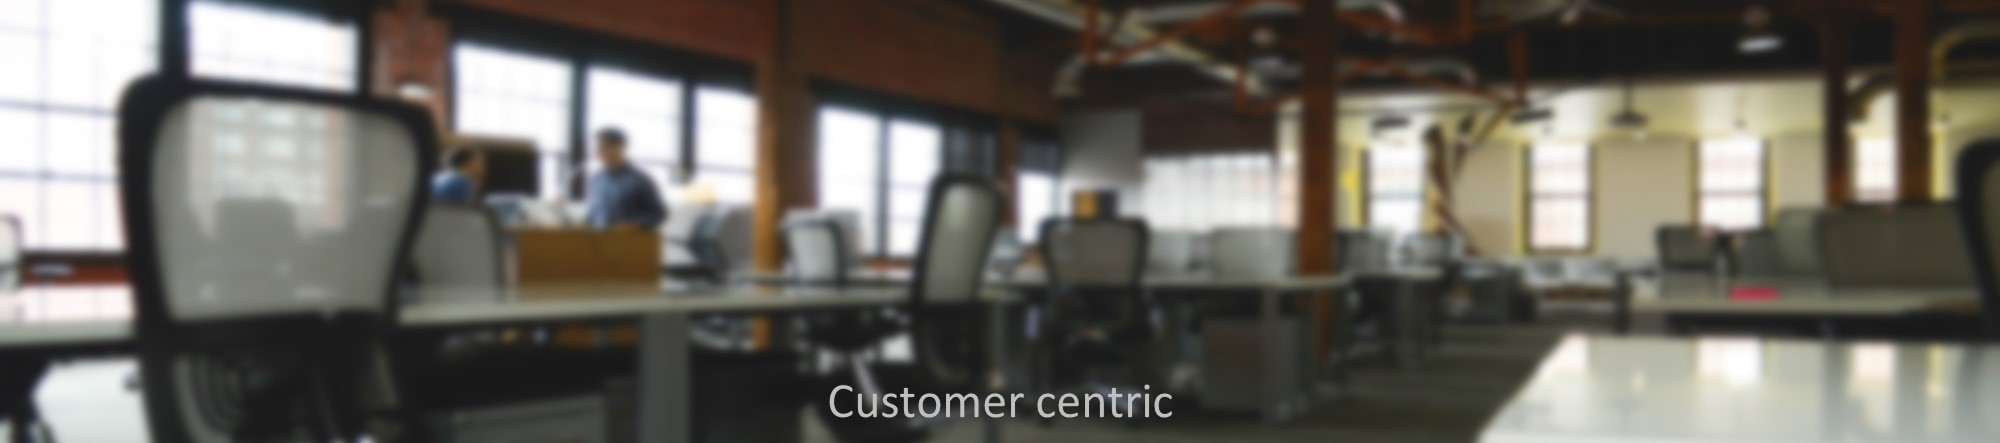 Kellerworx Customer Centric, Business Services